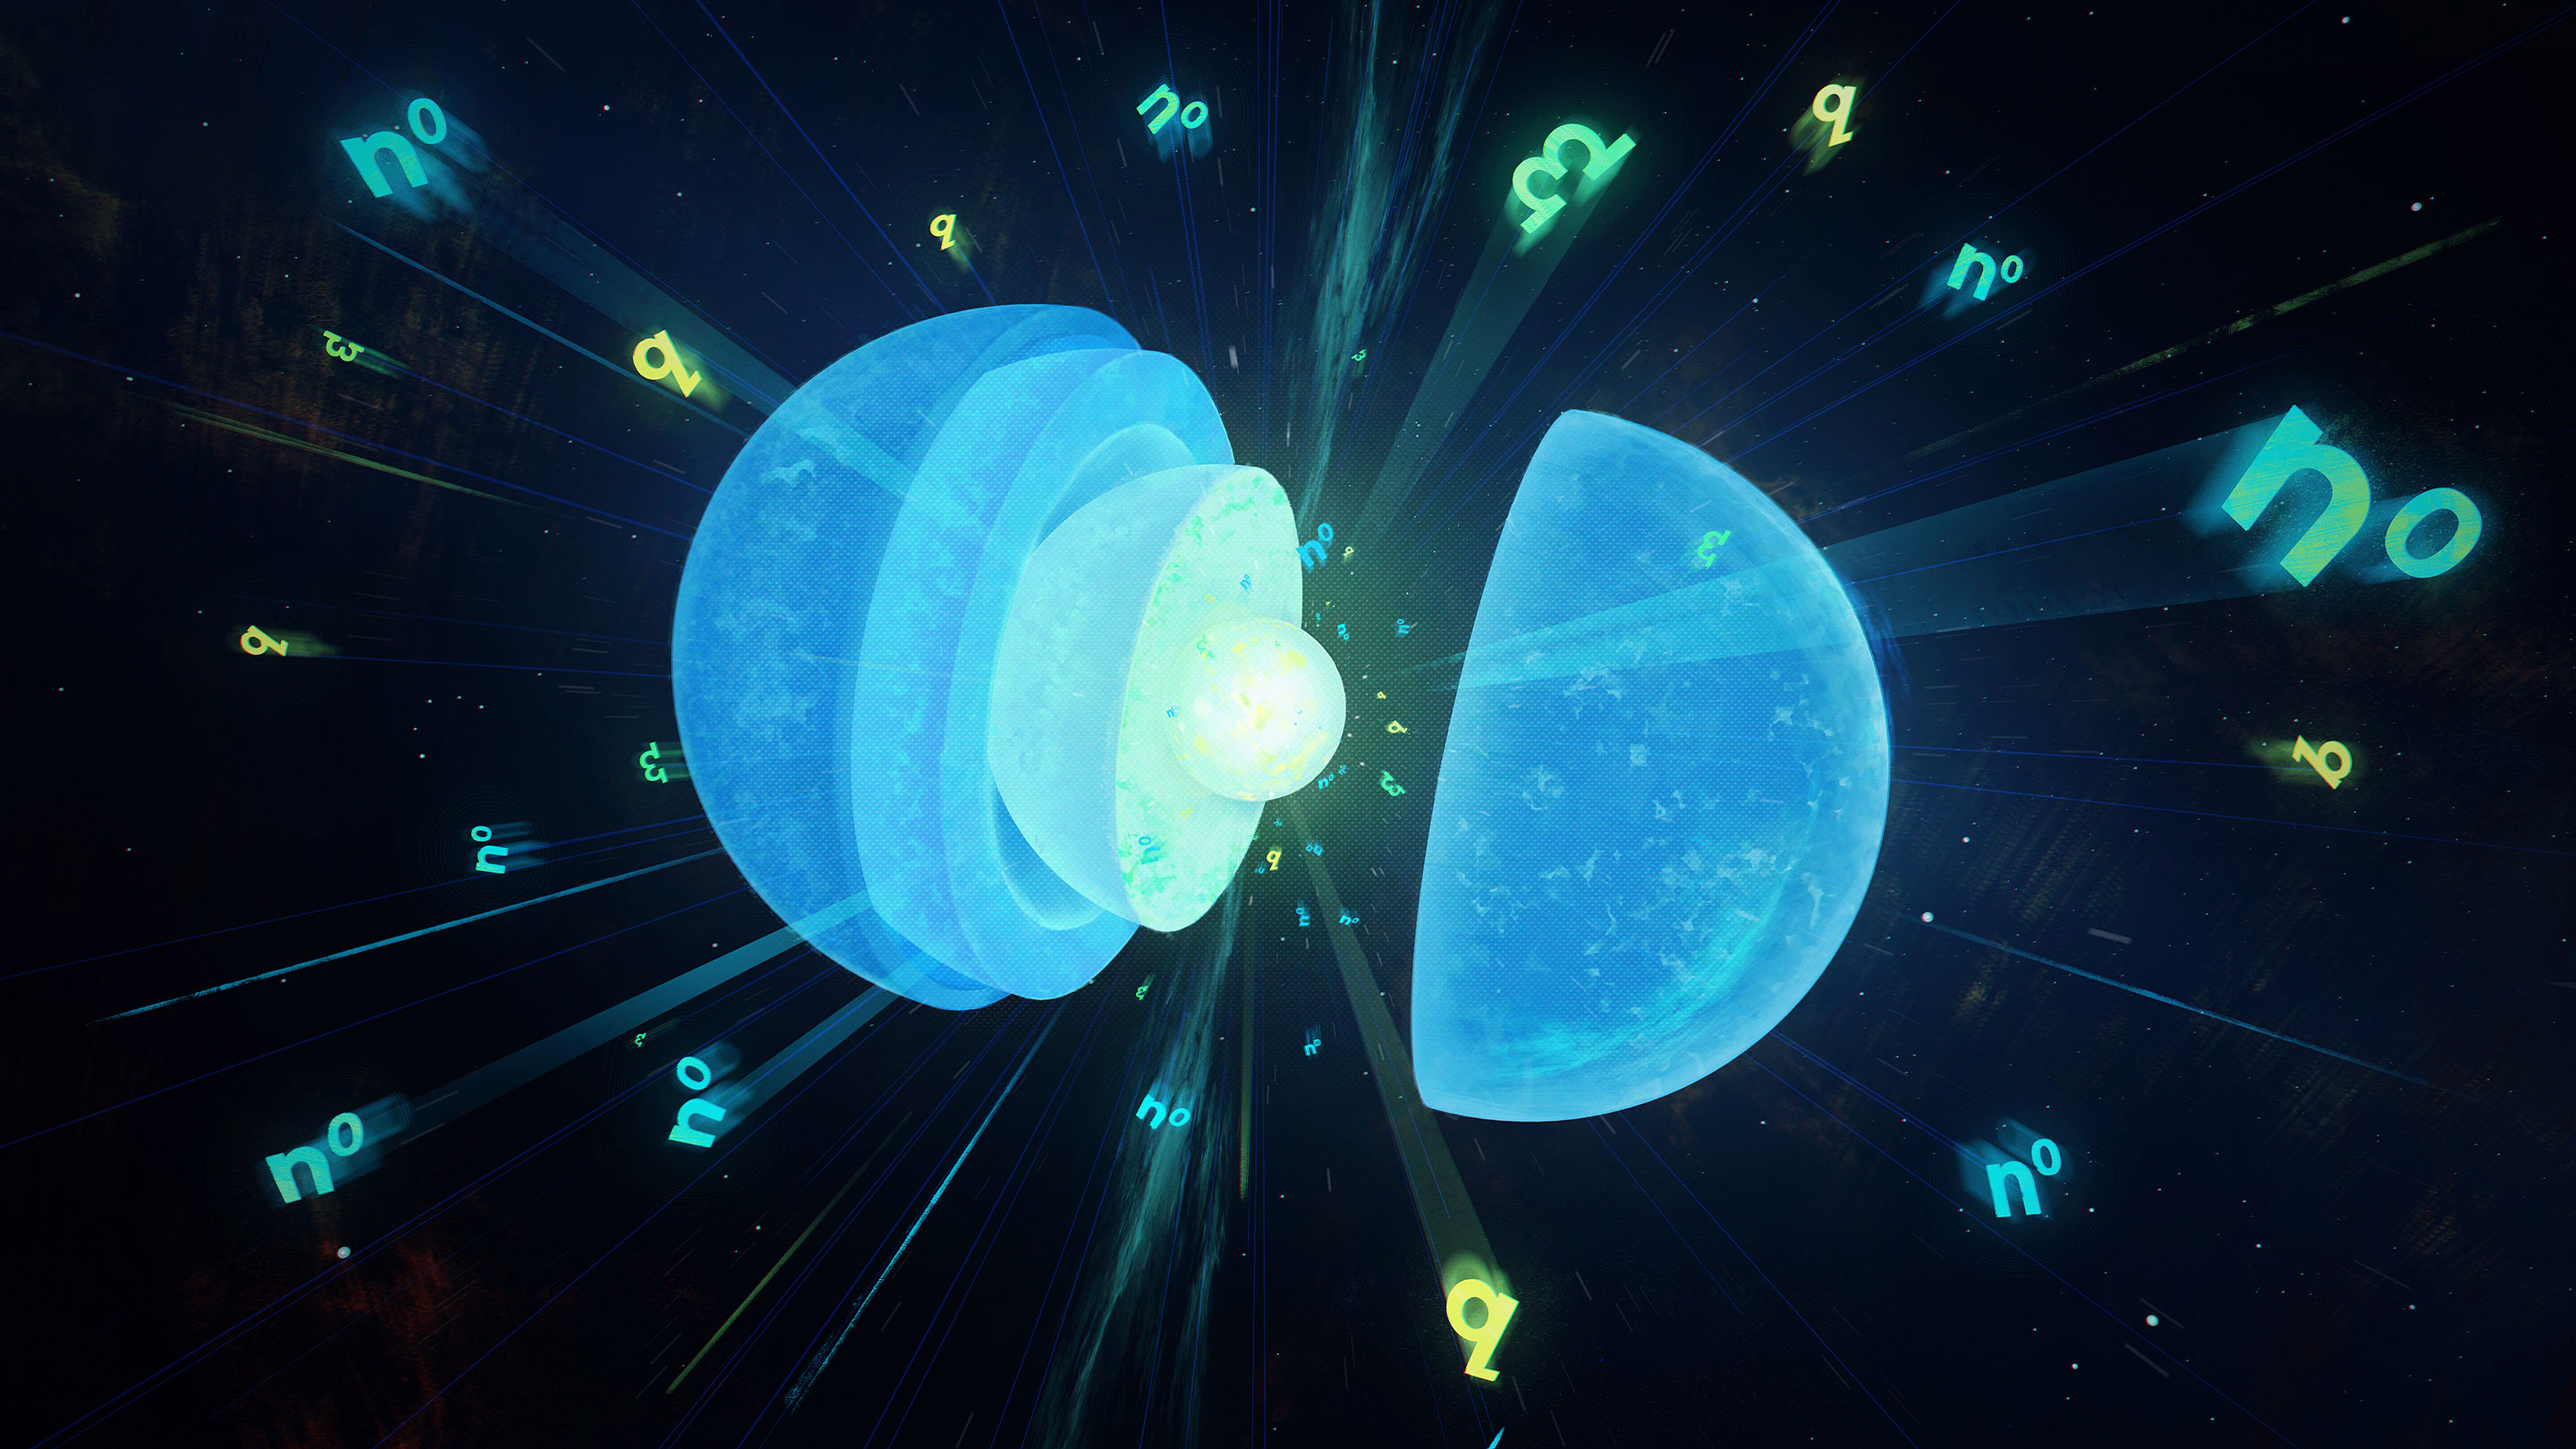 Squishy or Solid? A Neutron Star's Insides Open to Debate